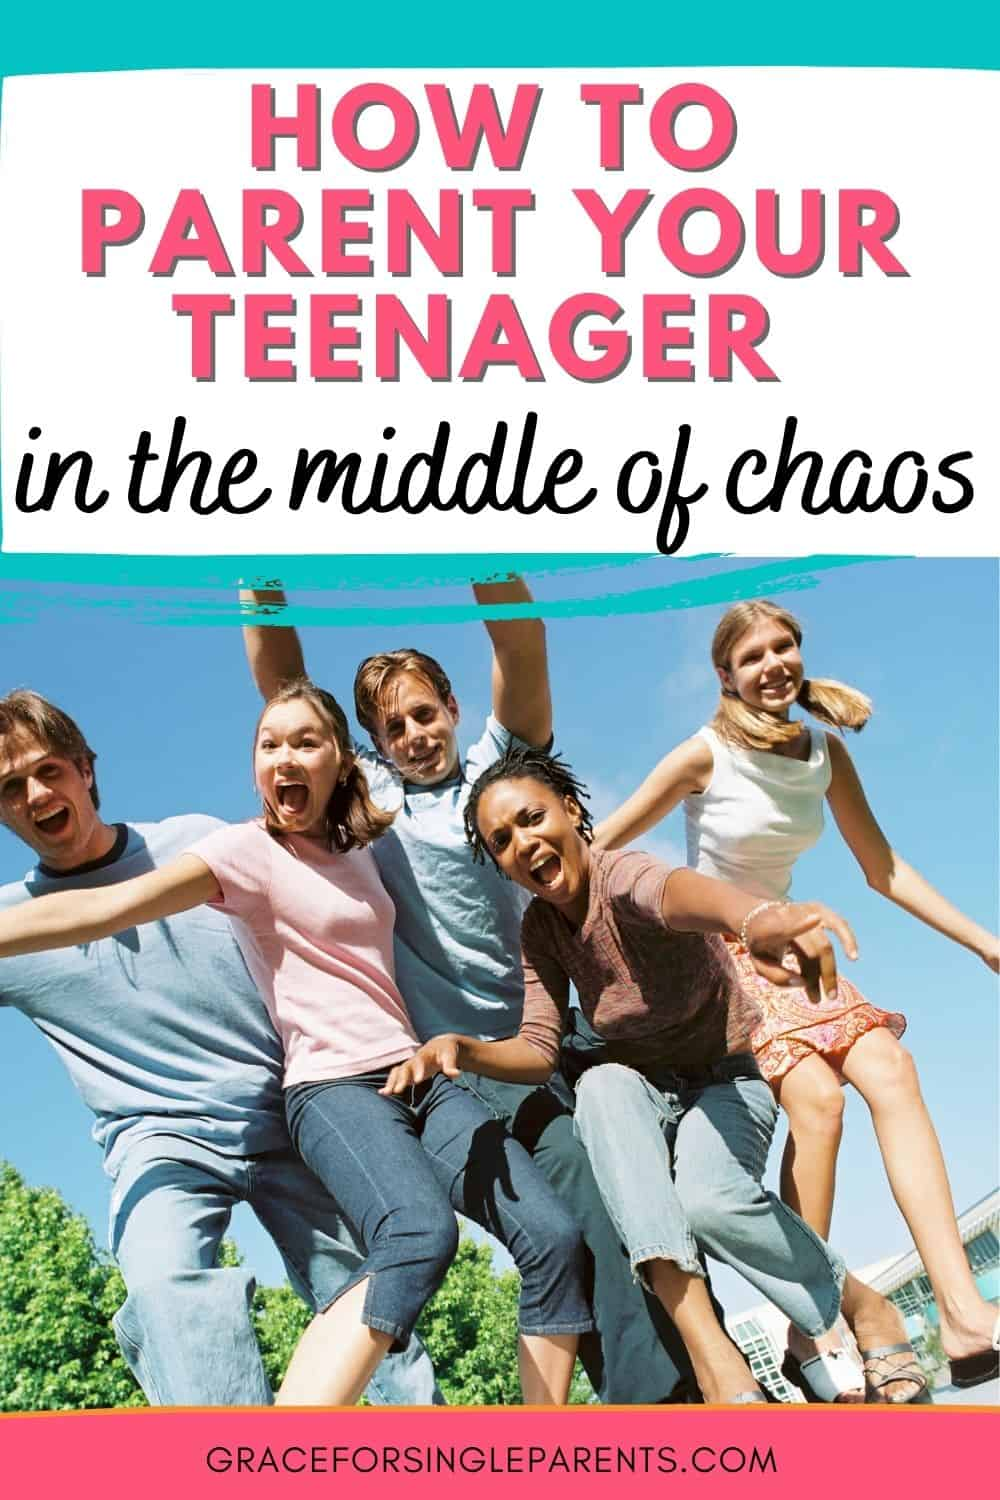 Parenting Your Teen in the Middle of Chaos